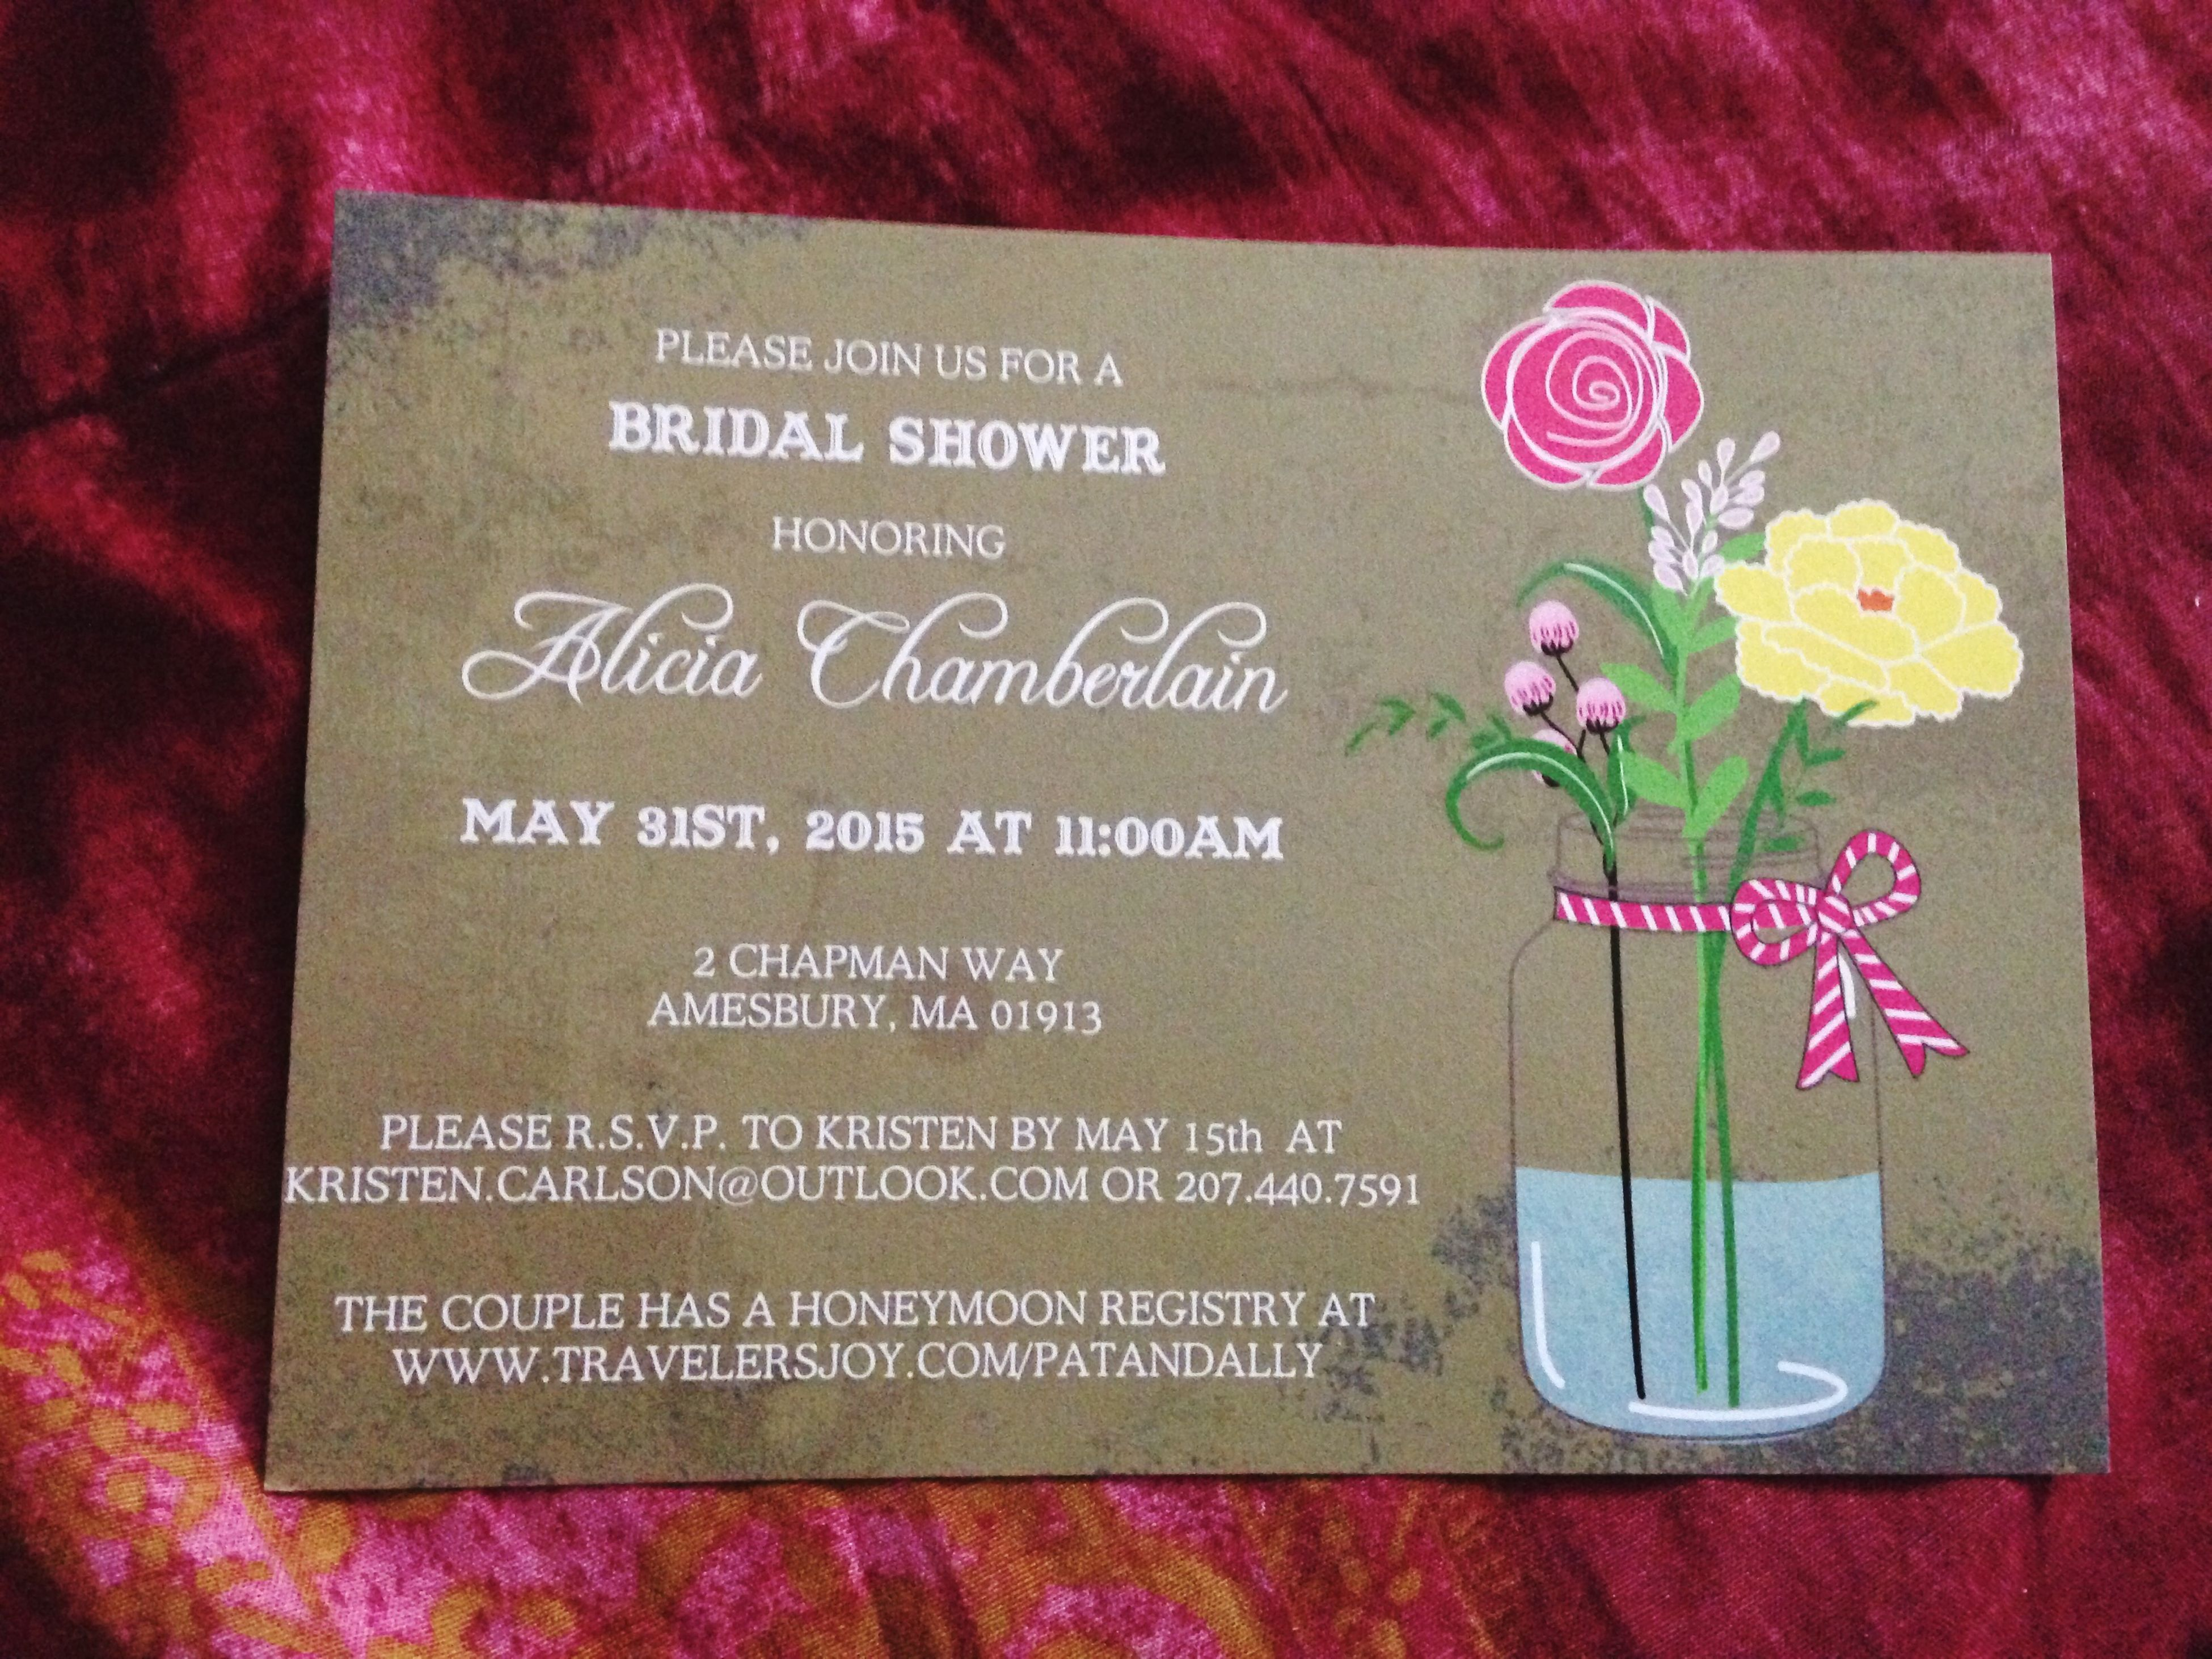 Bridal Shower Invite Baby Cousins  Getting  Married